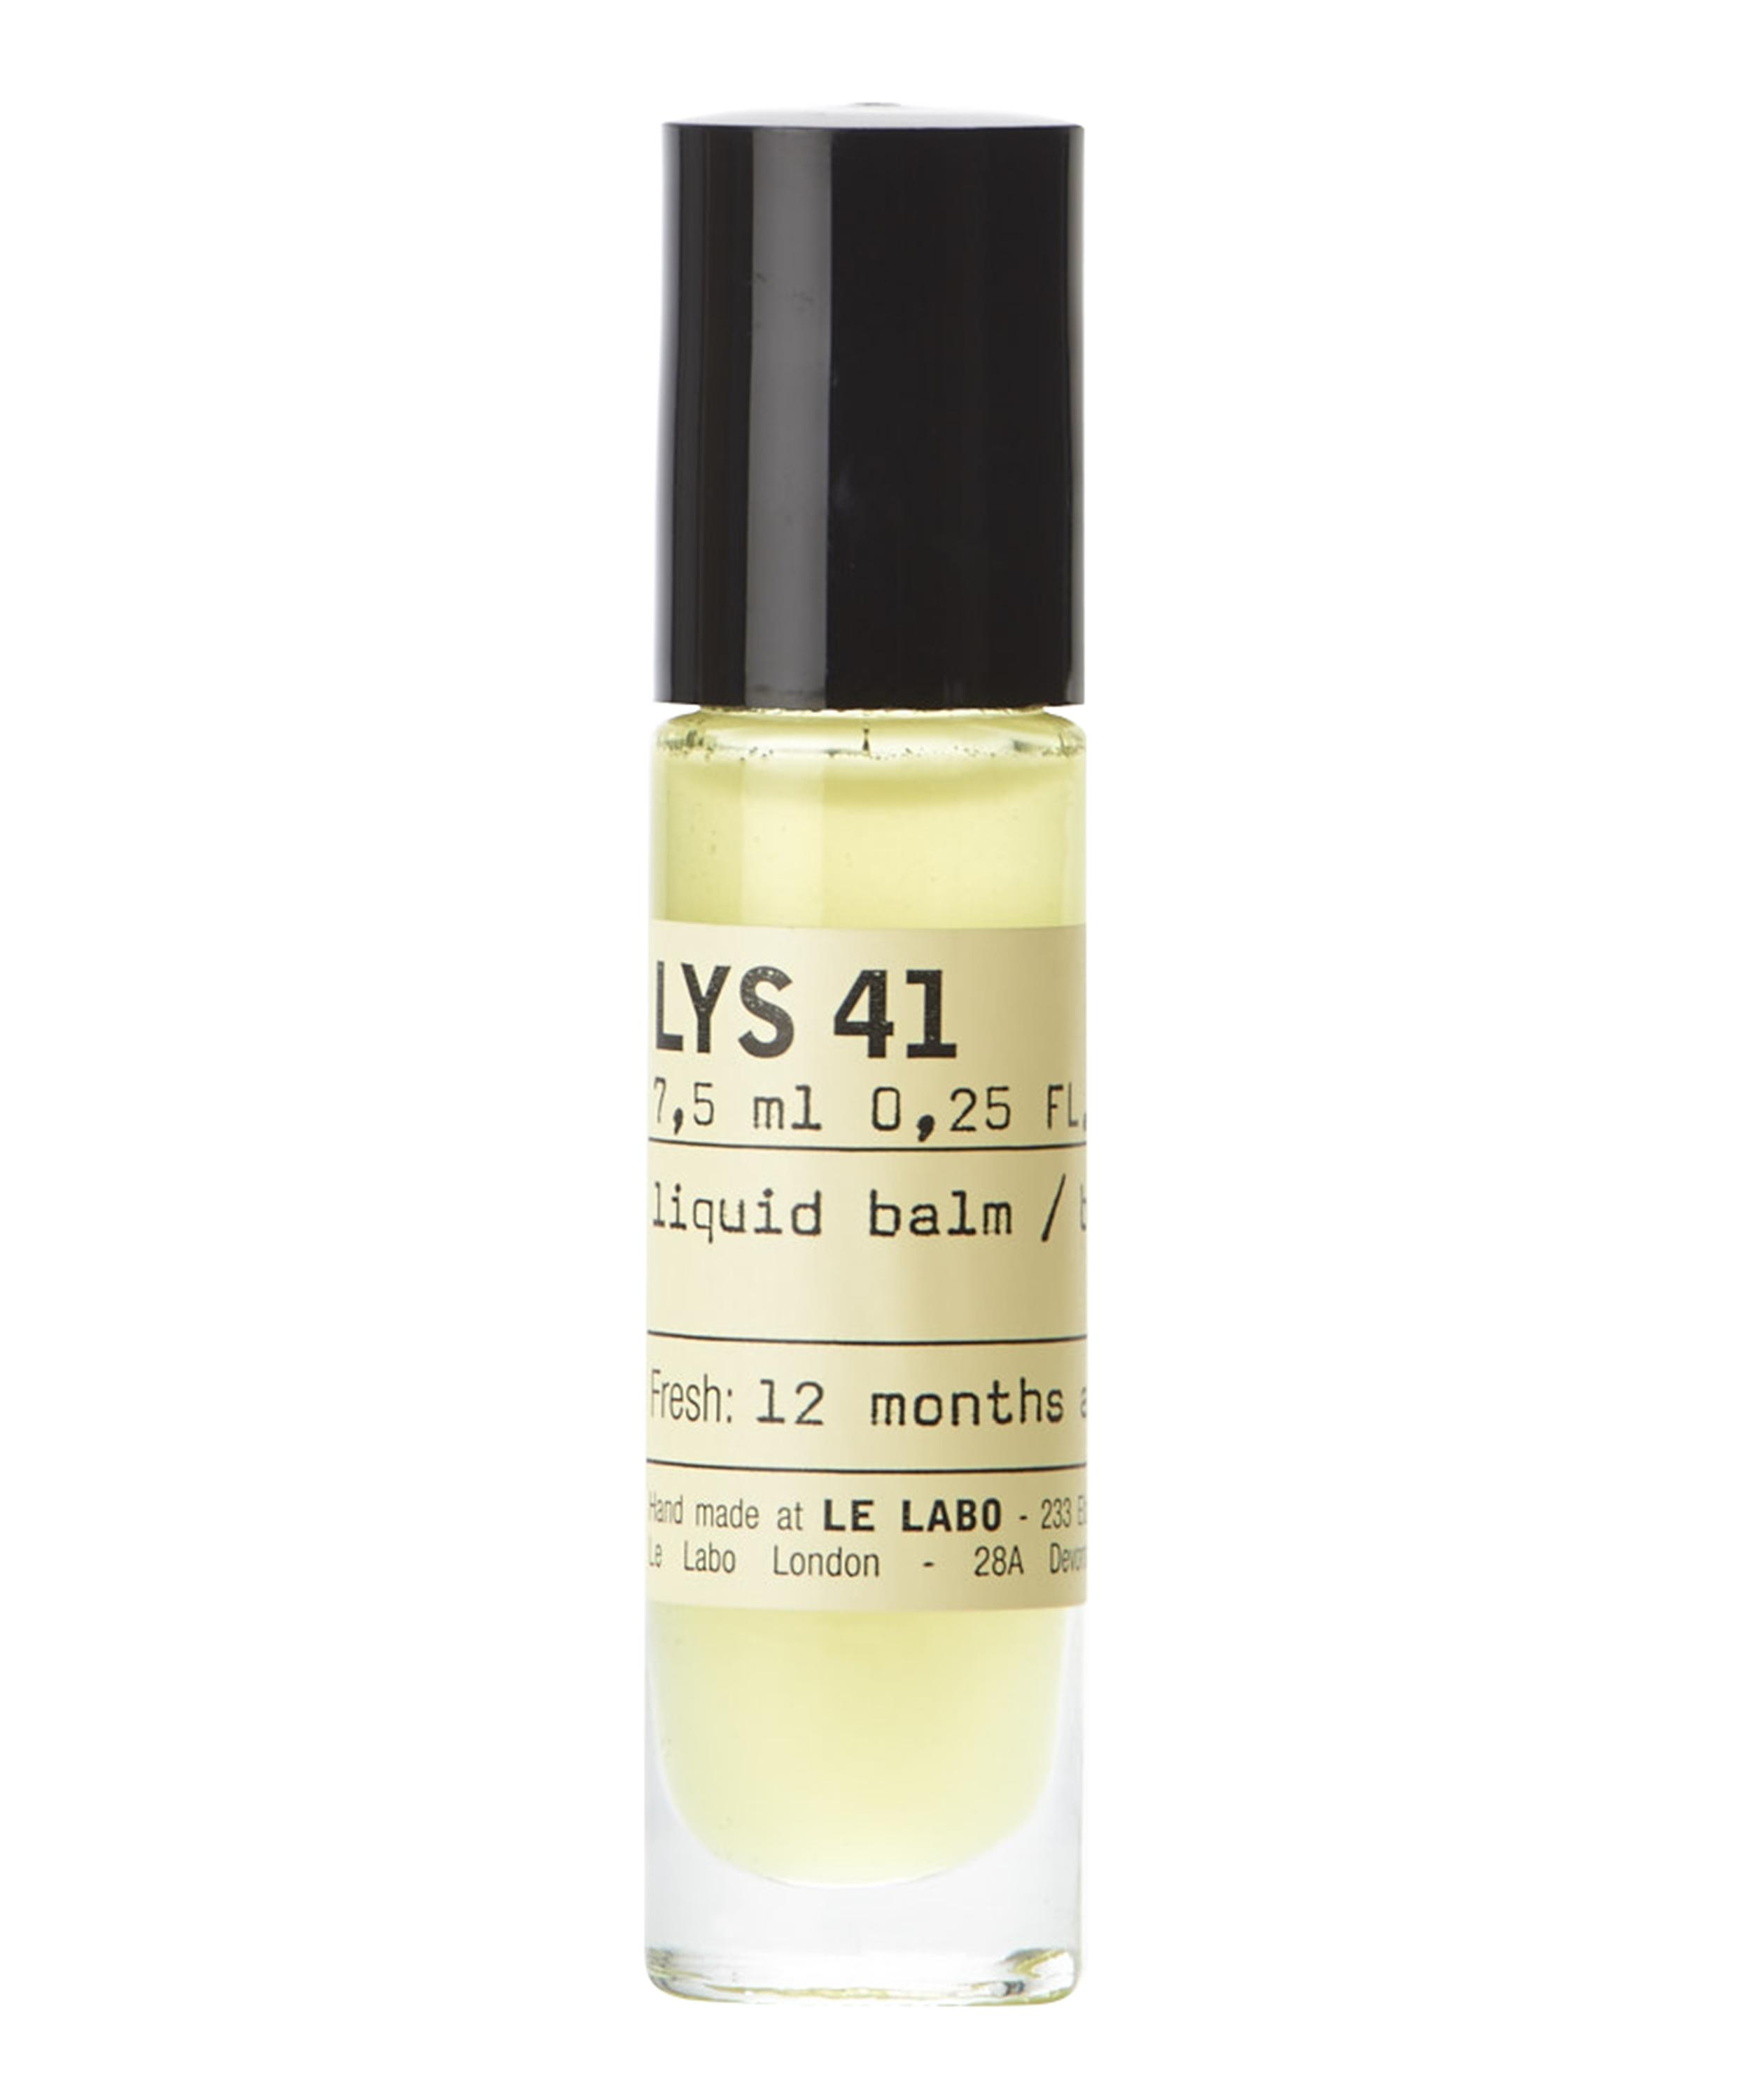 Perfume oil: Label scents: 41 Lys By